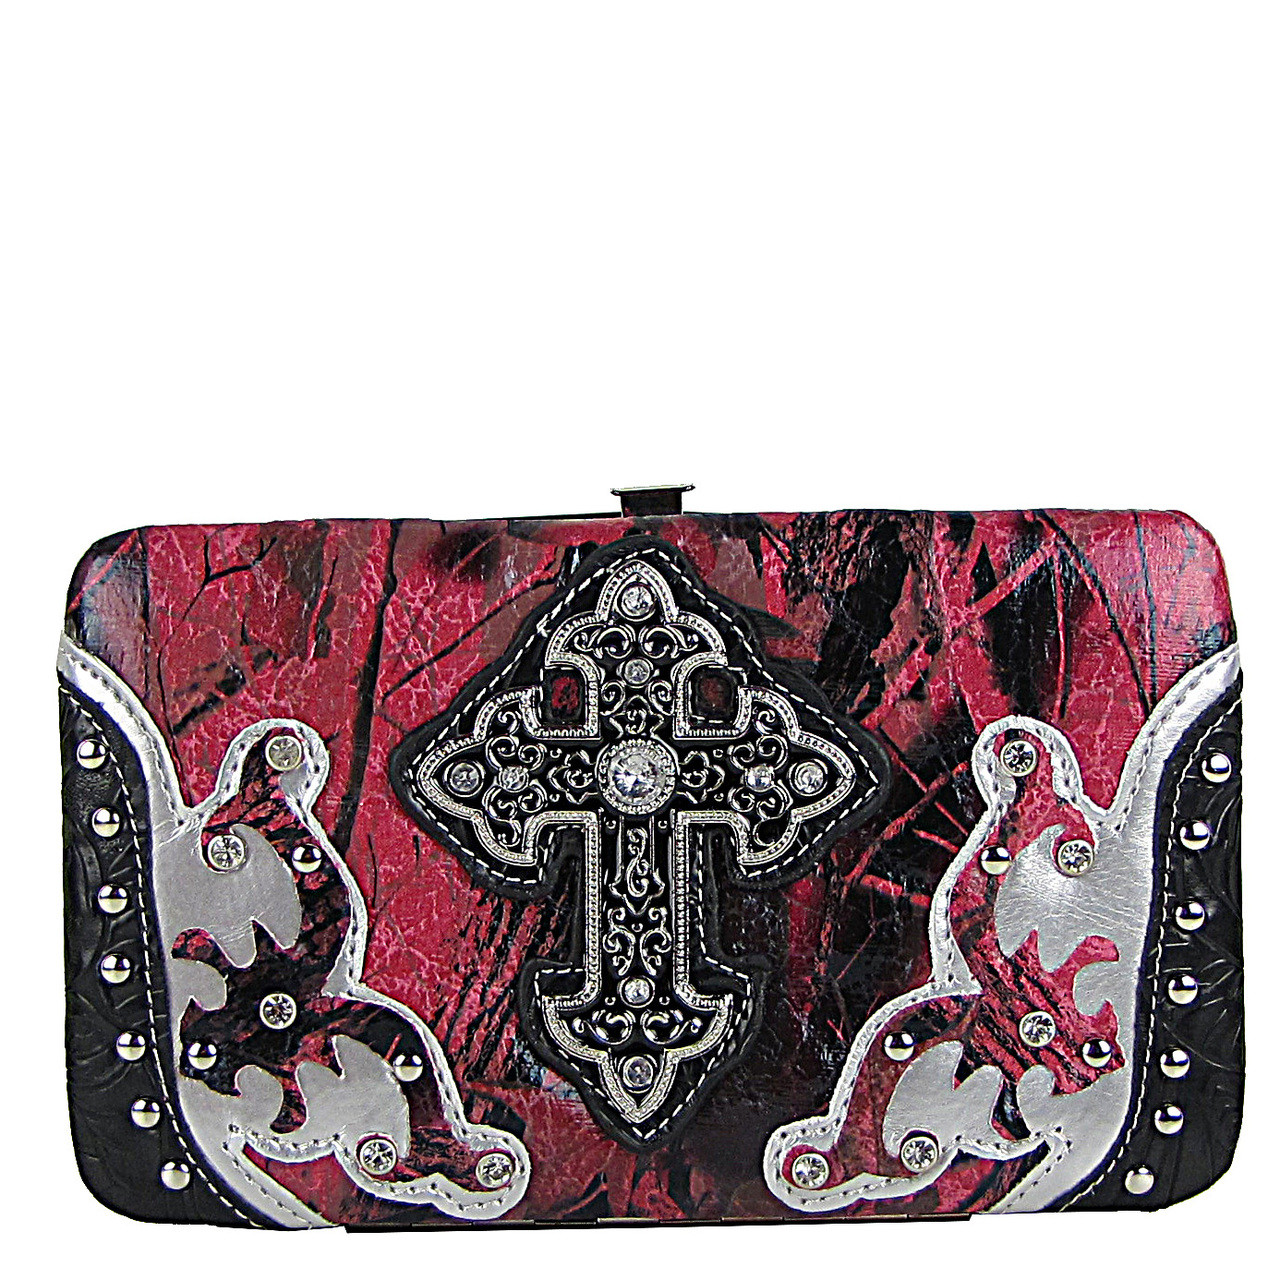 BLACK STUDDED METALLIC CAMO CROSS FLAT THICK WALLET FW2-04107BLK